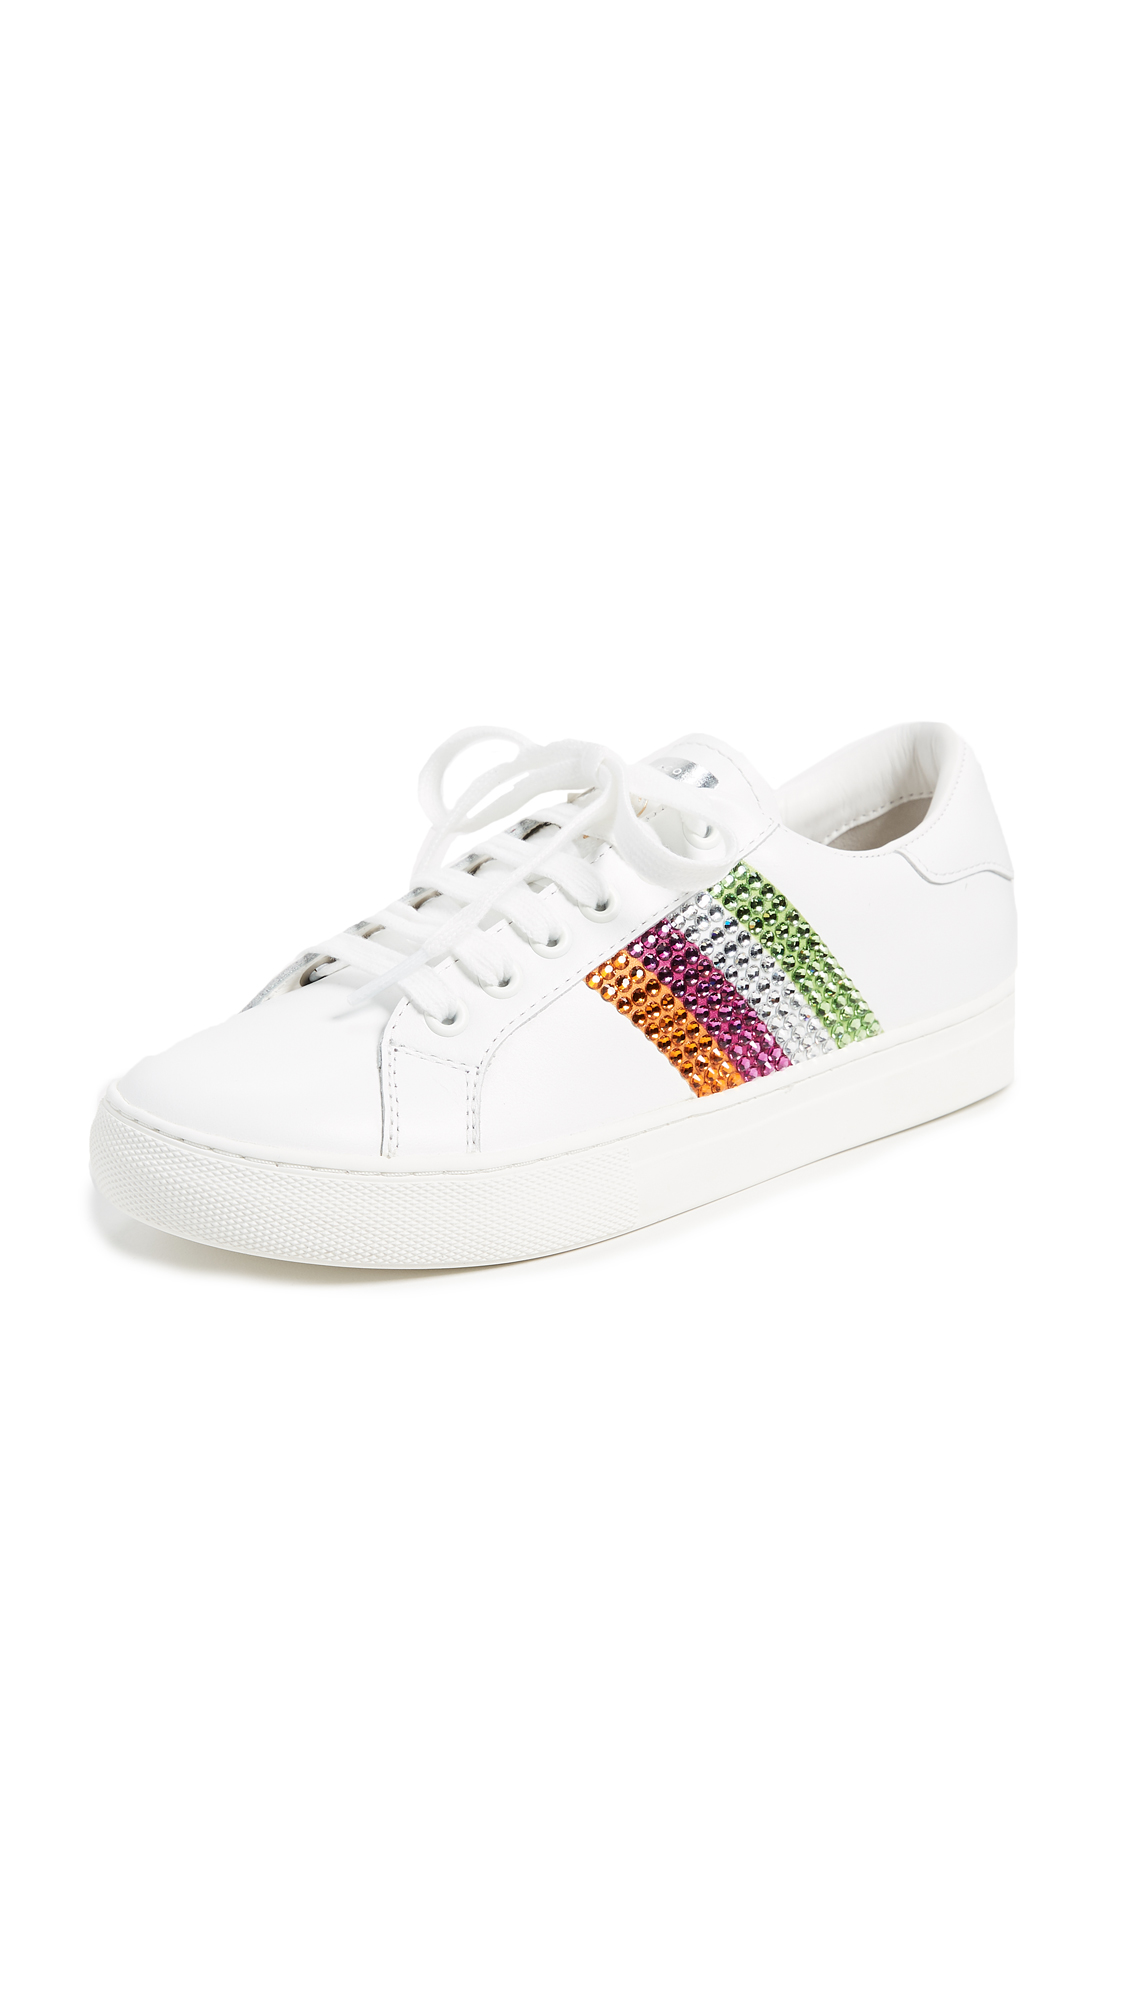 Marc Jacobs Empire Strass Low Top Sneakers - Pink Multi